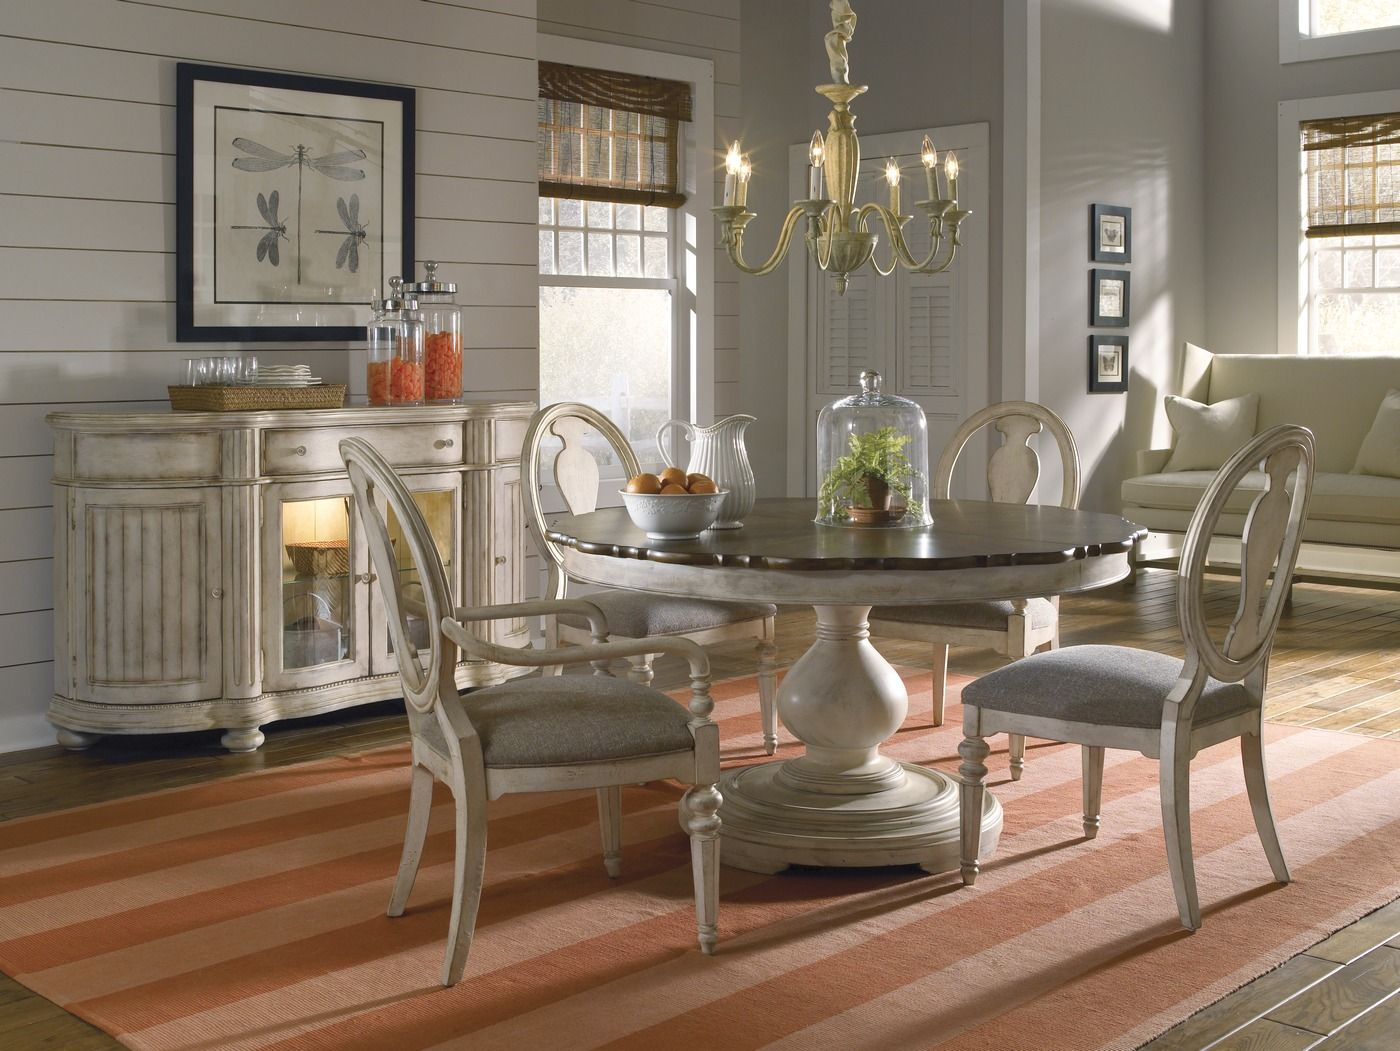 A r t furniture greenpoint oval dining table in coffee bean - Belmar Luxury Coastal Whitewash Finish Round Oval Dining Table Chairs Set